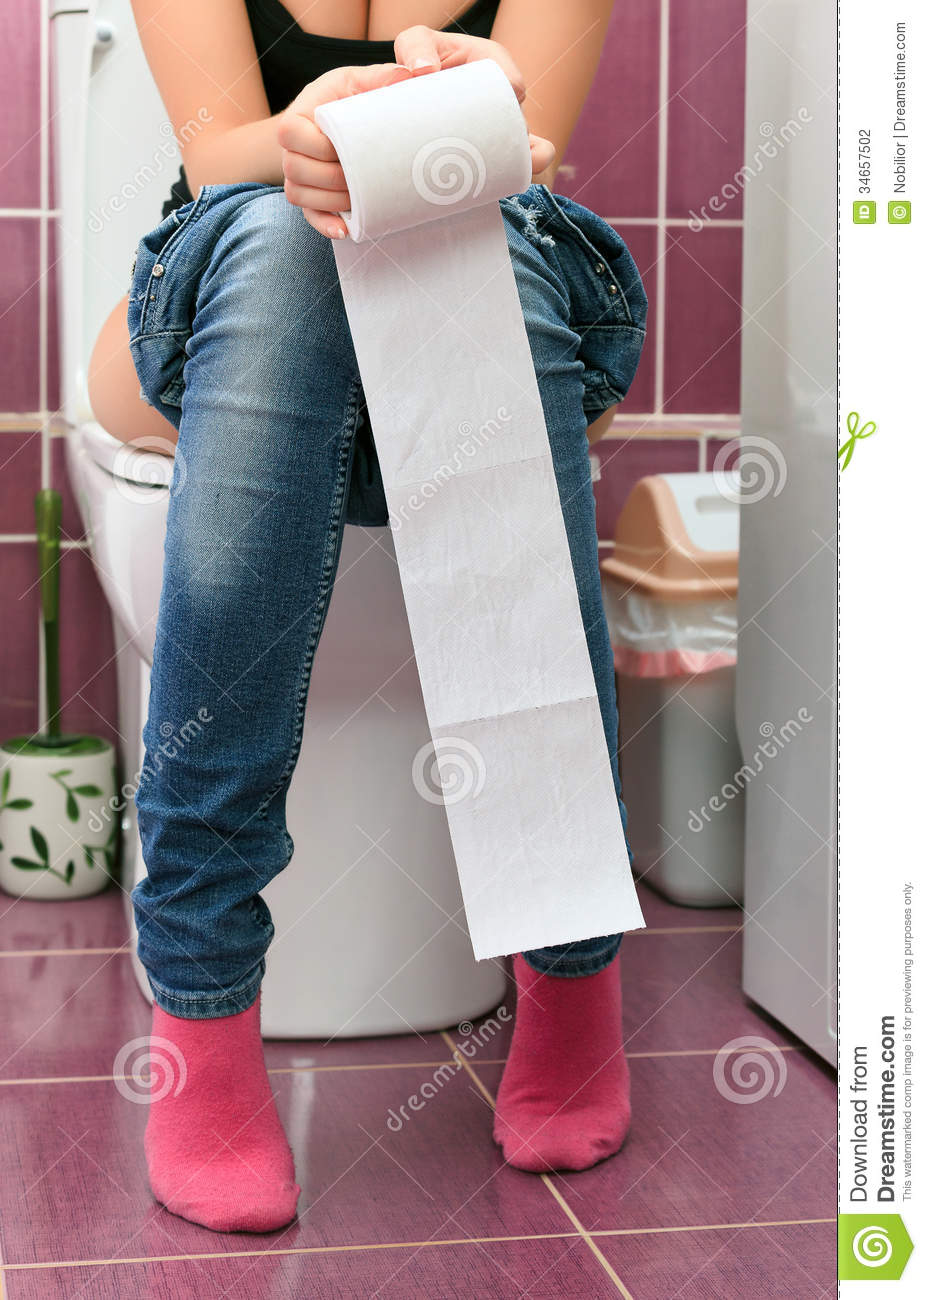 Woman In A Toilet Stock Photography - Image: 34657502